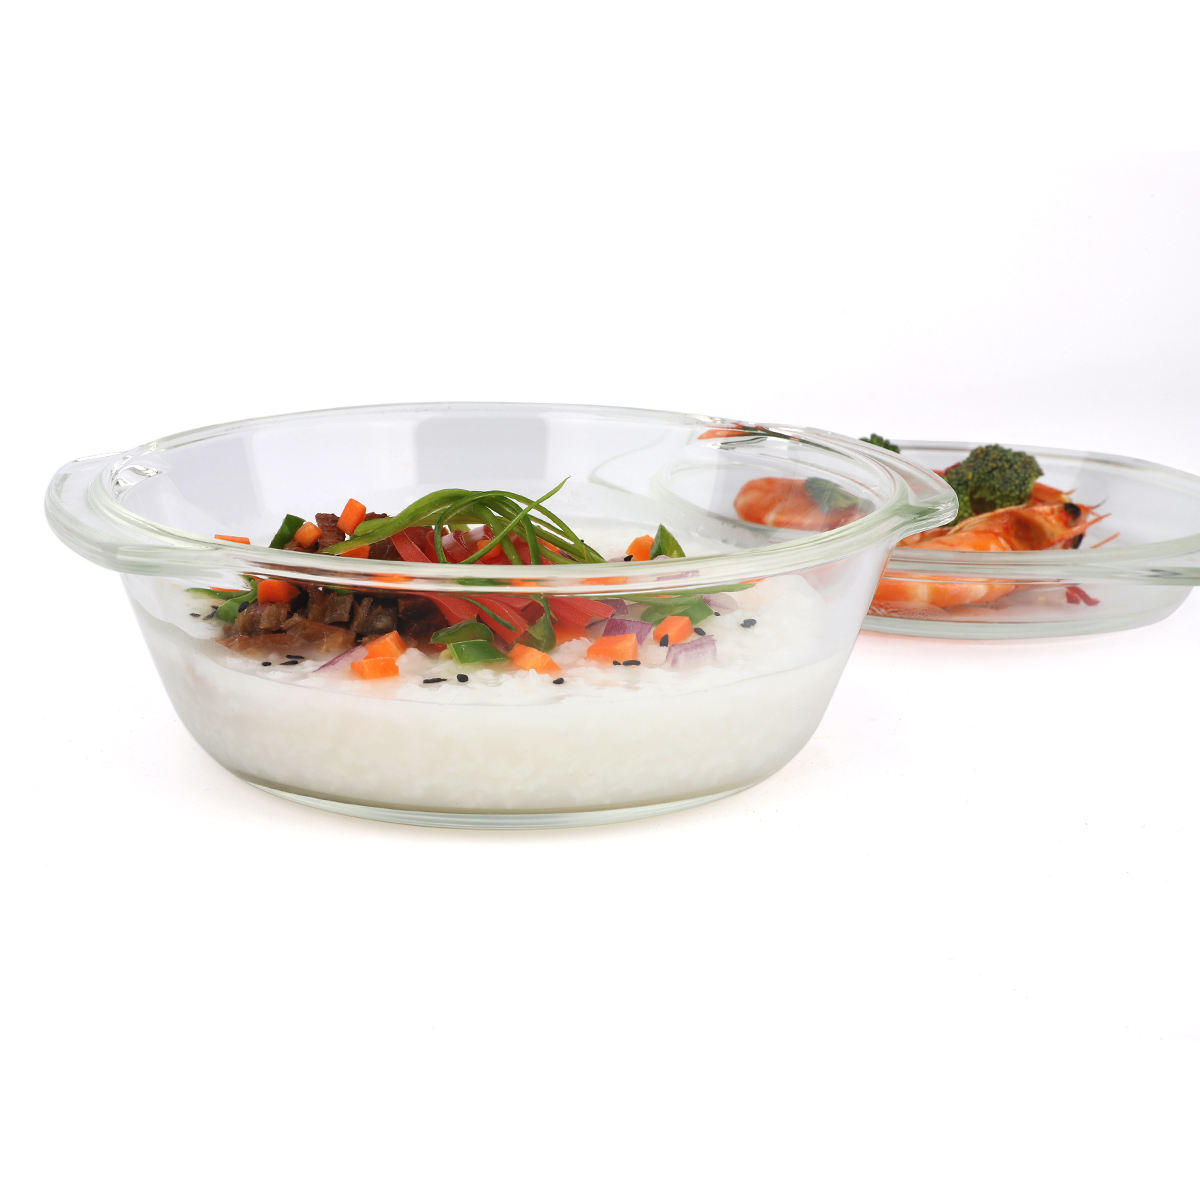 Glass Cookware China Top 10 Selling Cookwaresets Casserole Set Borosilicate Glass Cookware